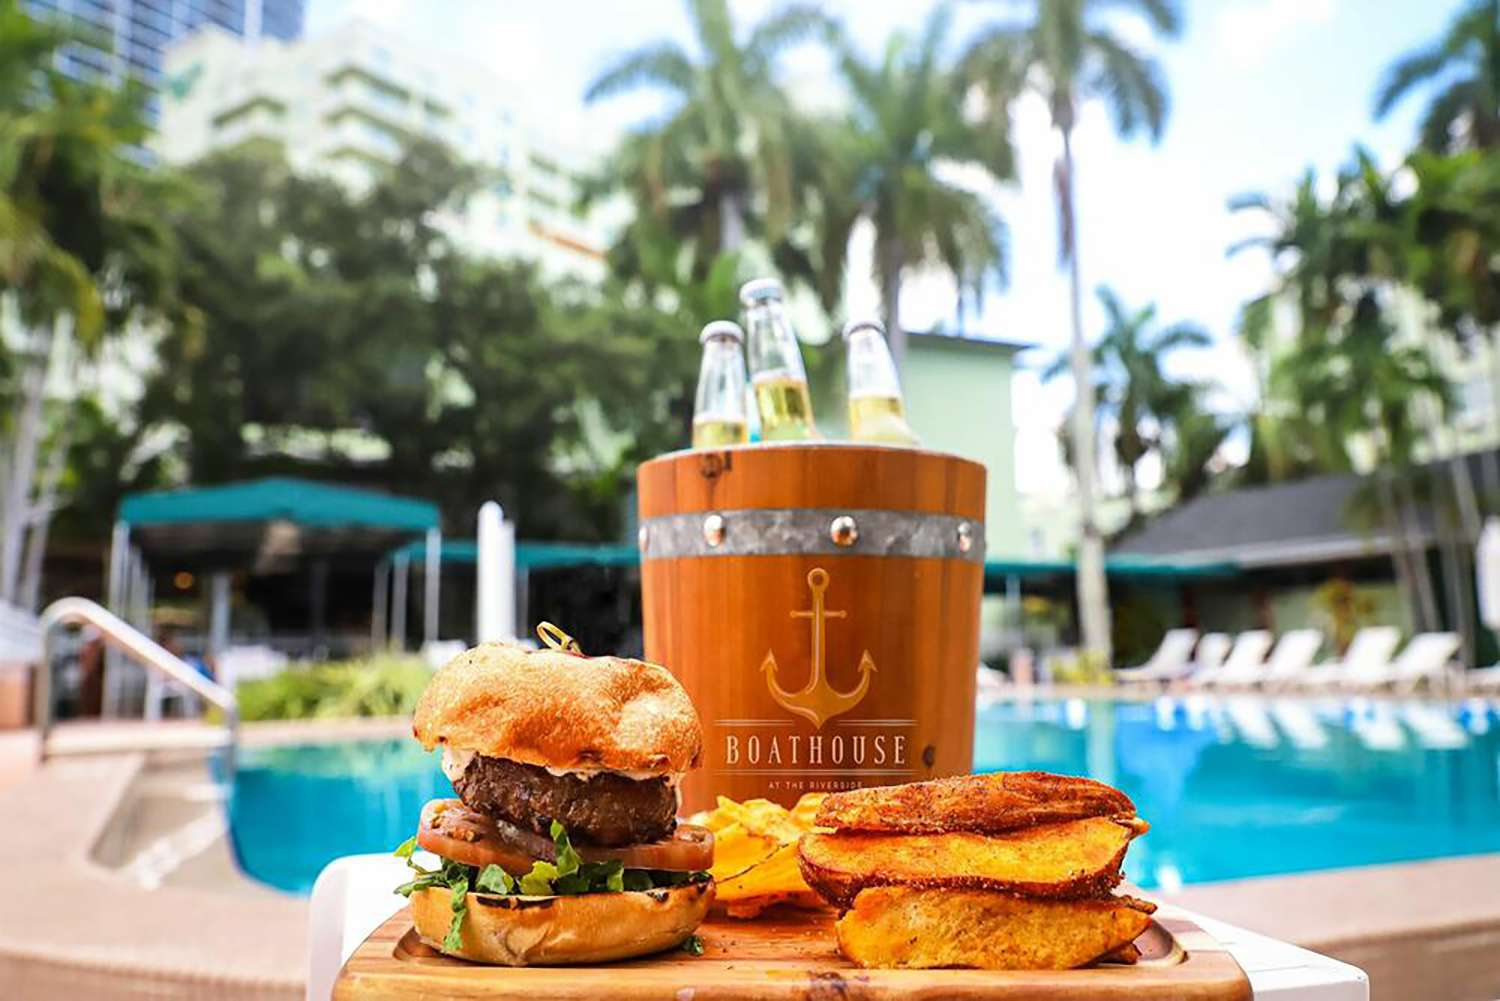 Burgers and food poolside at Boathouse at the Riverside in Fort Lauderdale